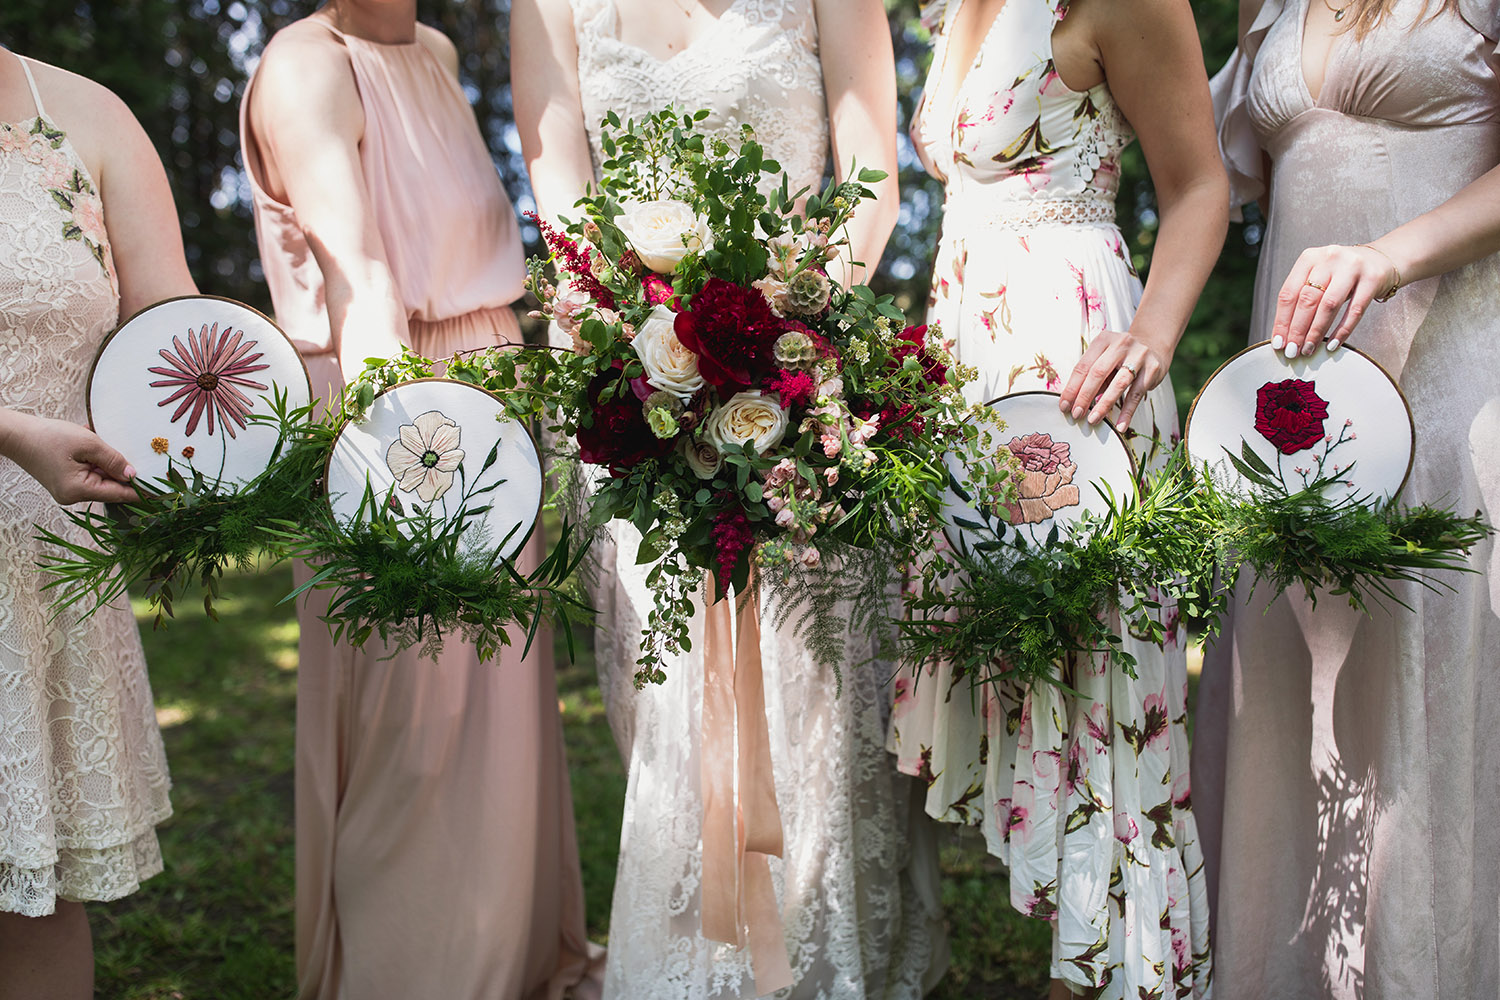 bridesmaids carrying embroidery hoops